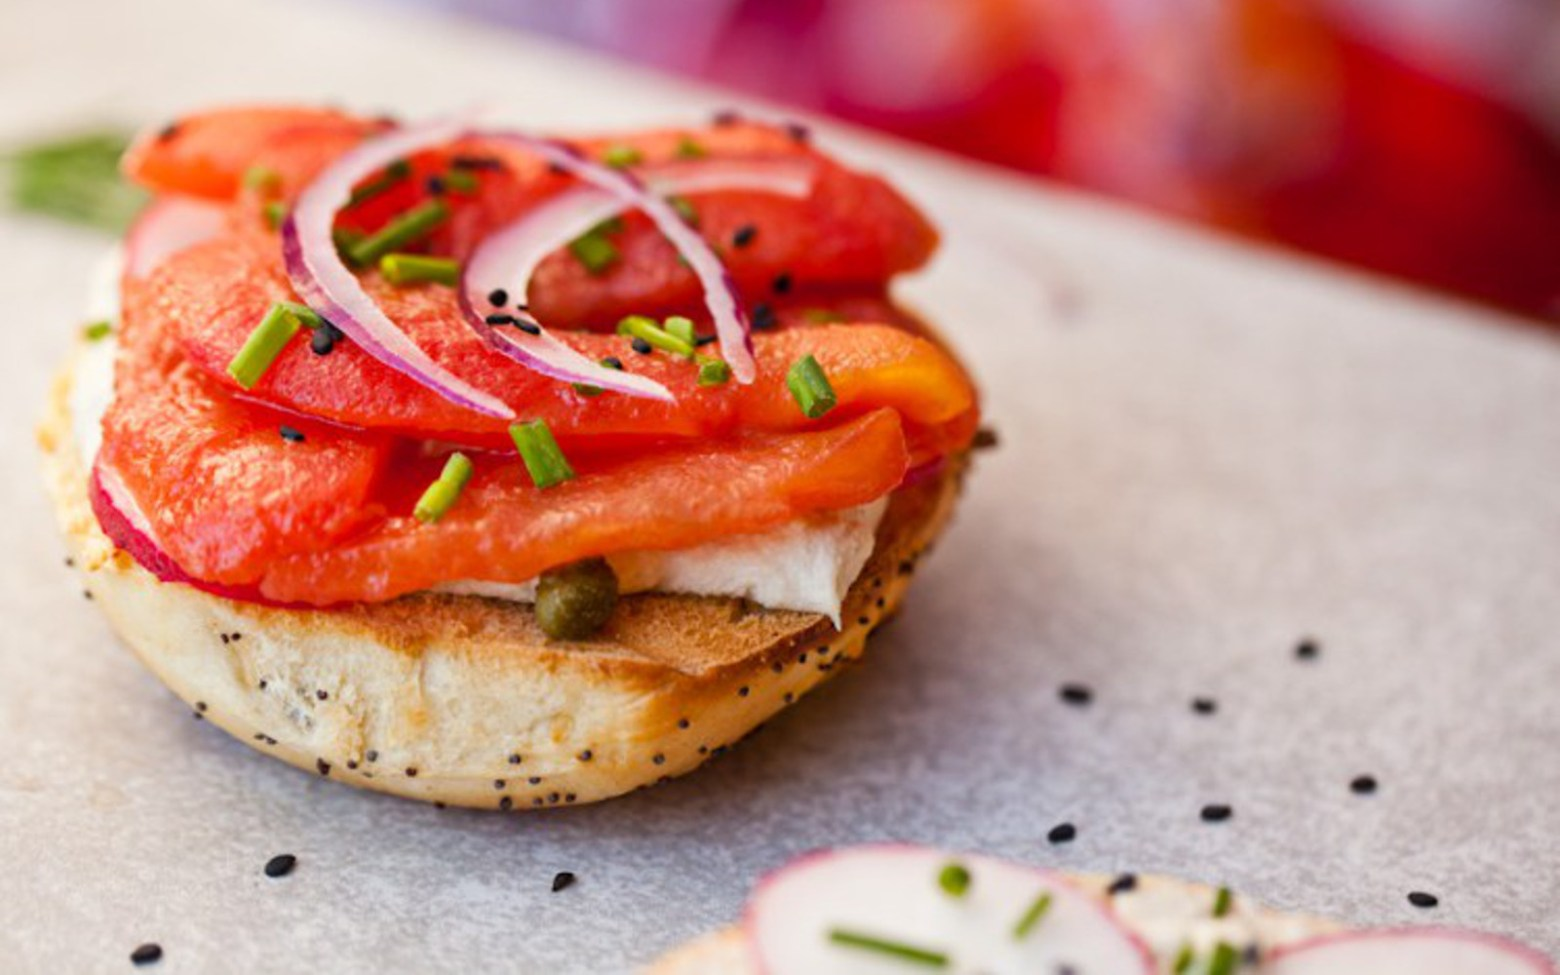 Vegan Bagels With Tomato Lox and Cashew Cream Cheese